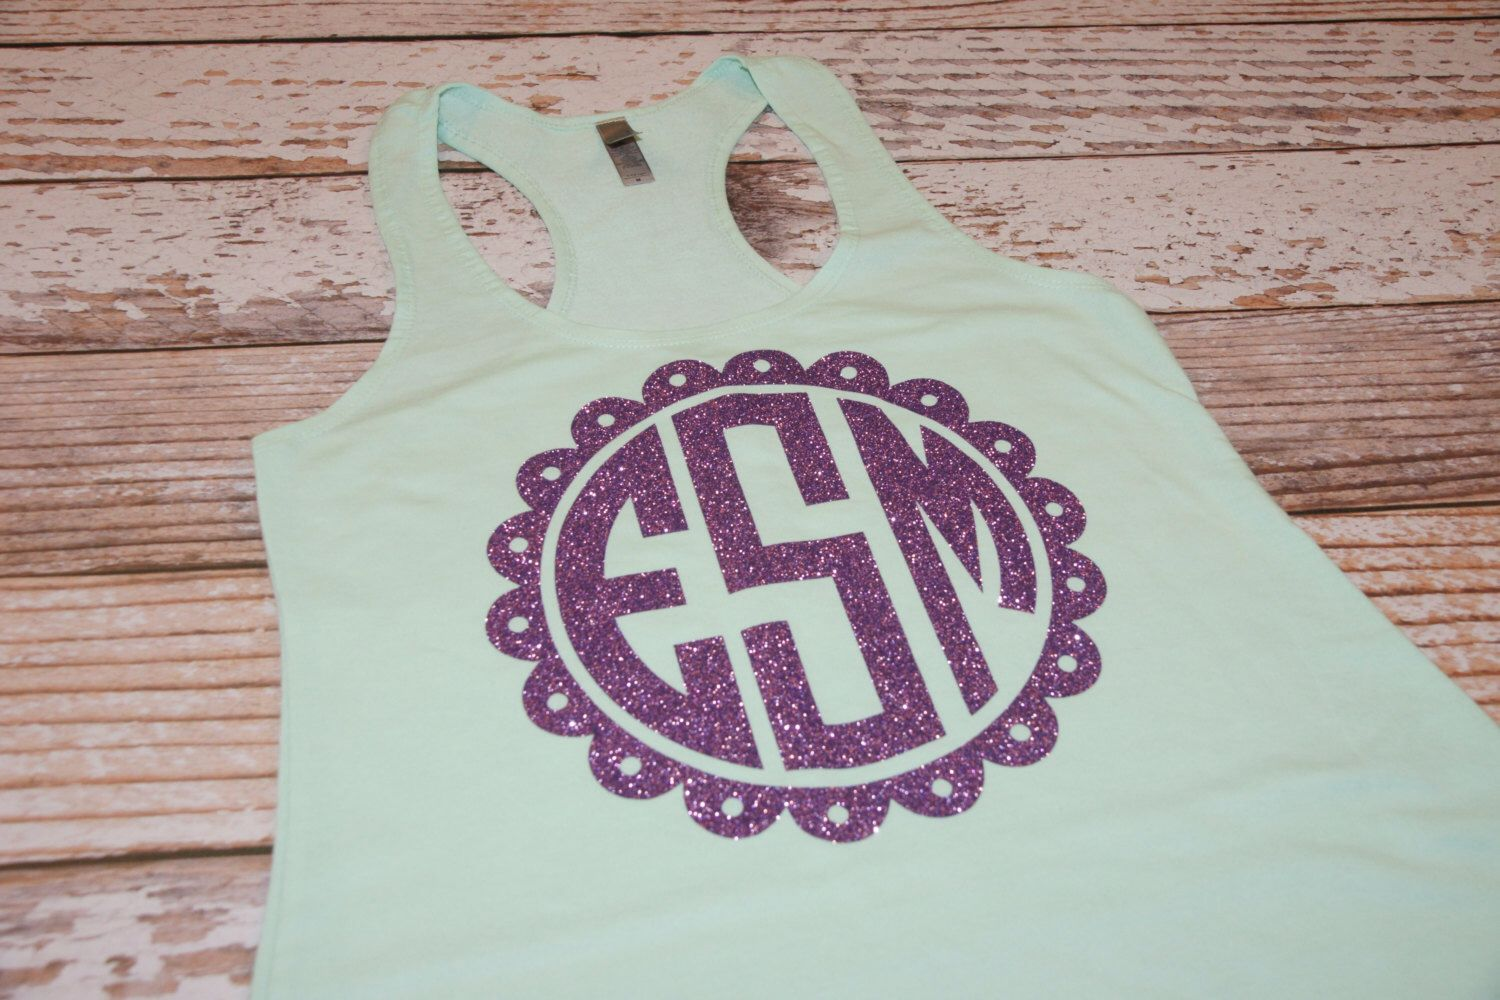 Monogram Tank Top. Preppy Monogram Shirt. Monogram Tank. Racer Back Tank Top. Bridesmaid Shirt. Bridesmaid Gift. Personalized Shirt by owltheshirtsyouneed on Etsy https://www.etsy.com/listing/231972654/monogram-tank-top-preppy-monogram-shirt